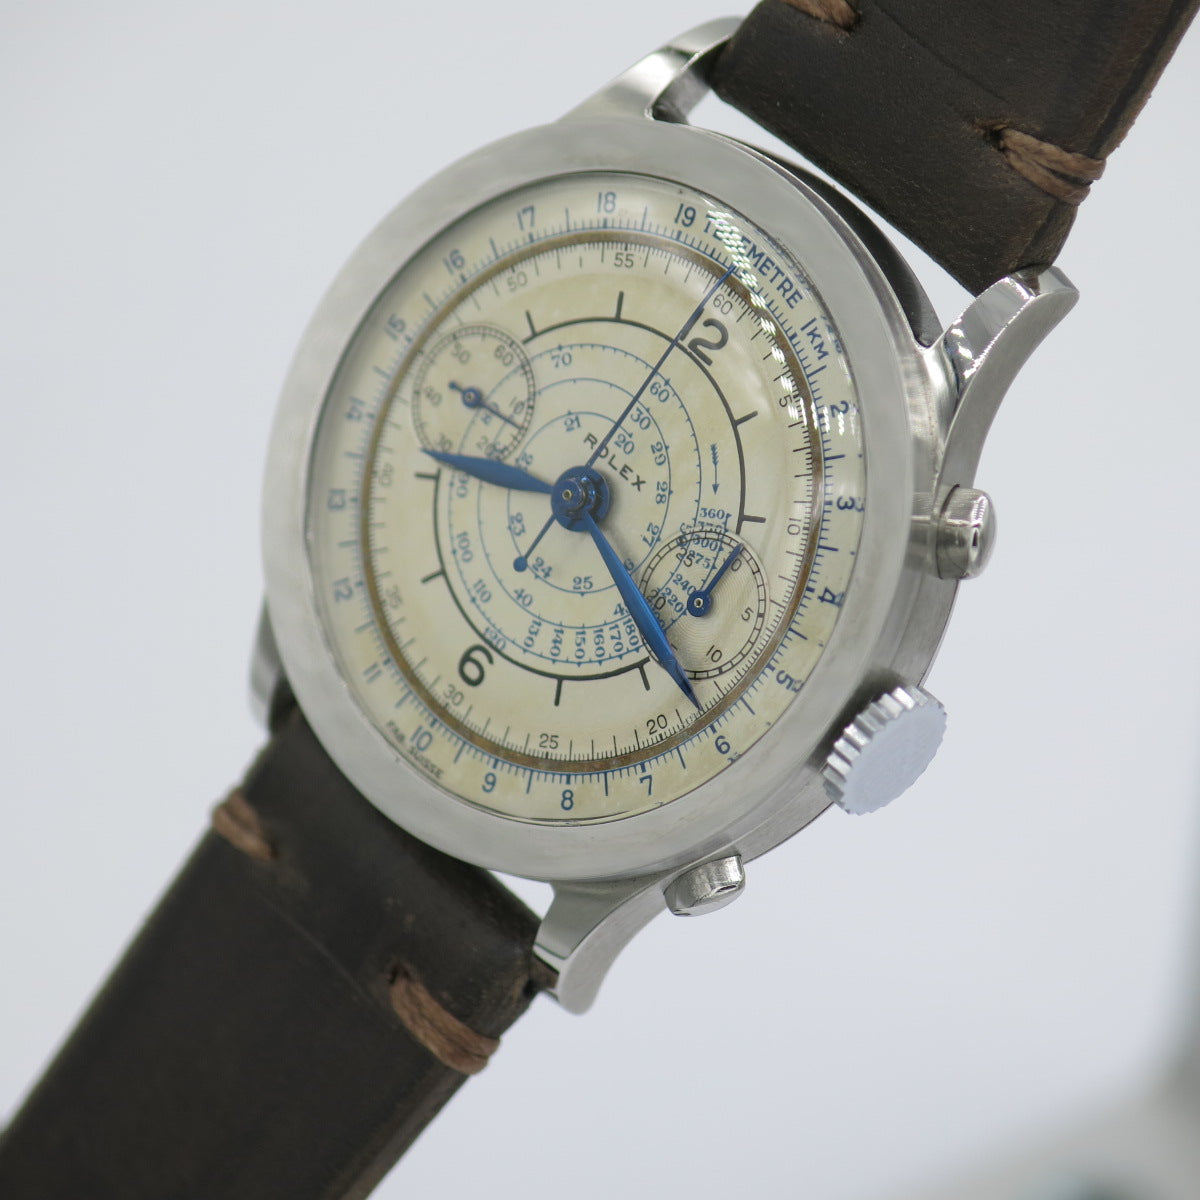 Wrist Chronicles - An extraordinary example of vintage Rolex chronograph